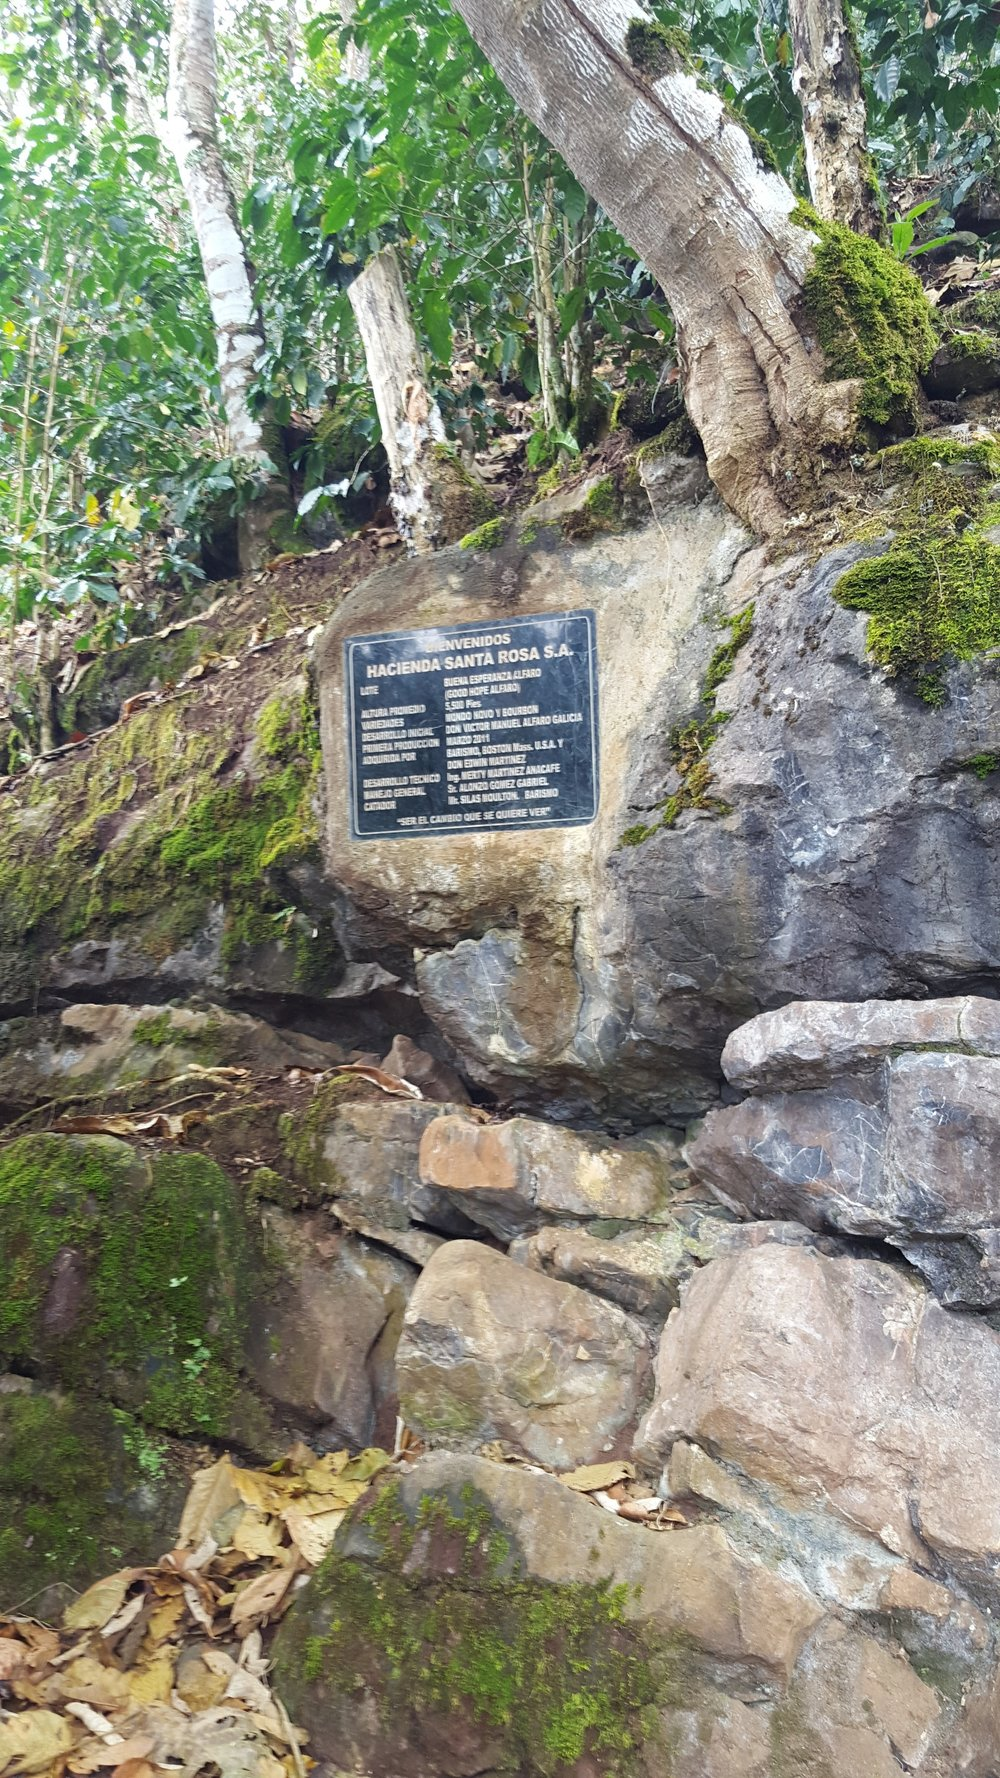 Plaque on the trail leading up to Buena Esperanza, commemorating the inaugural harvest.